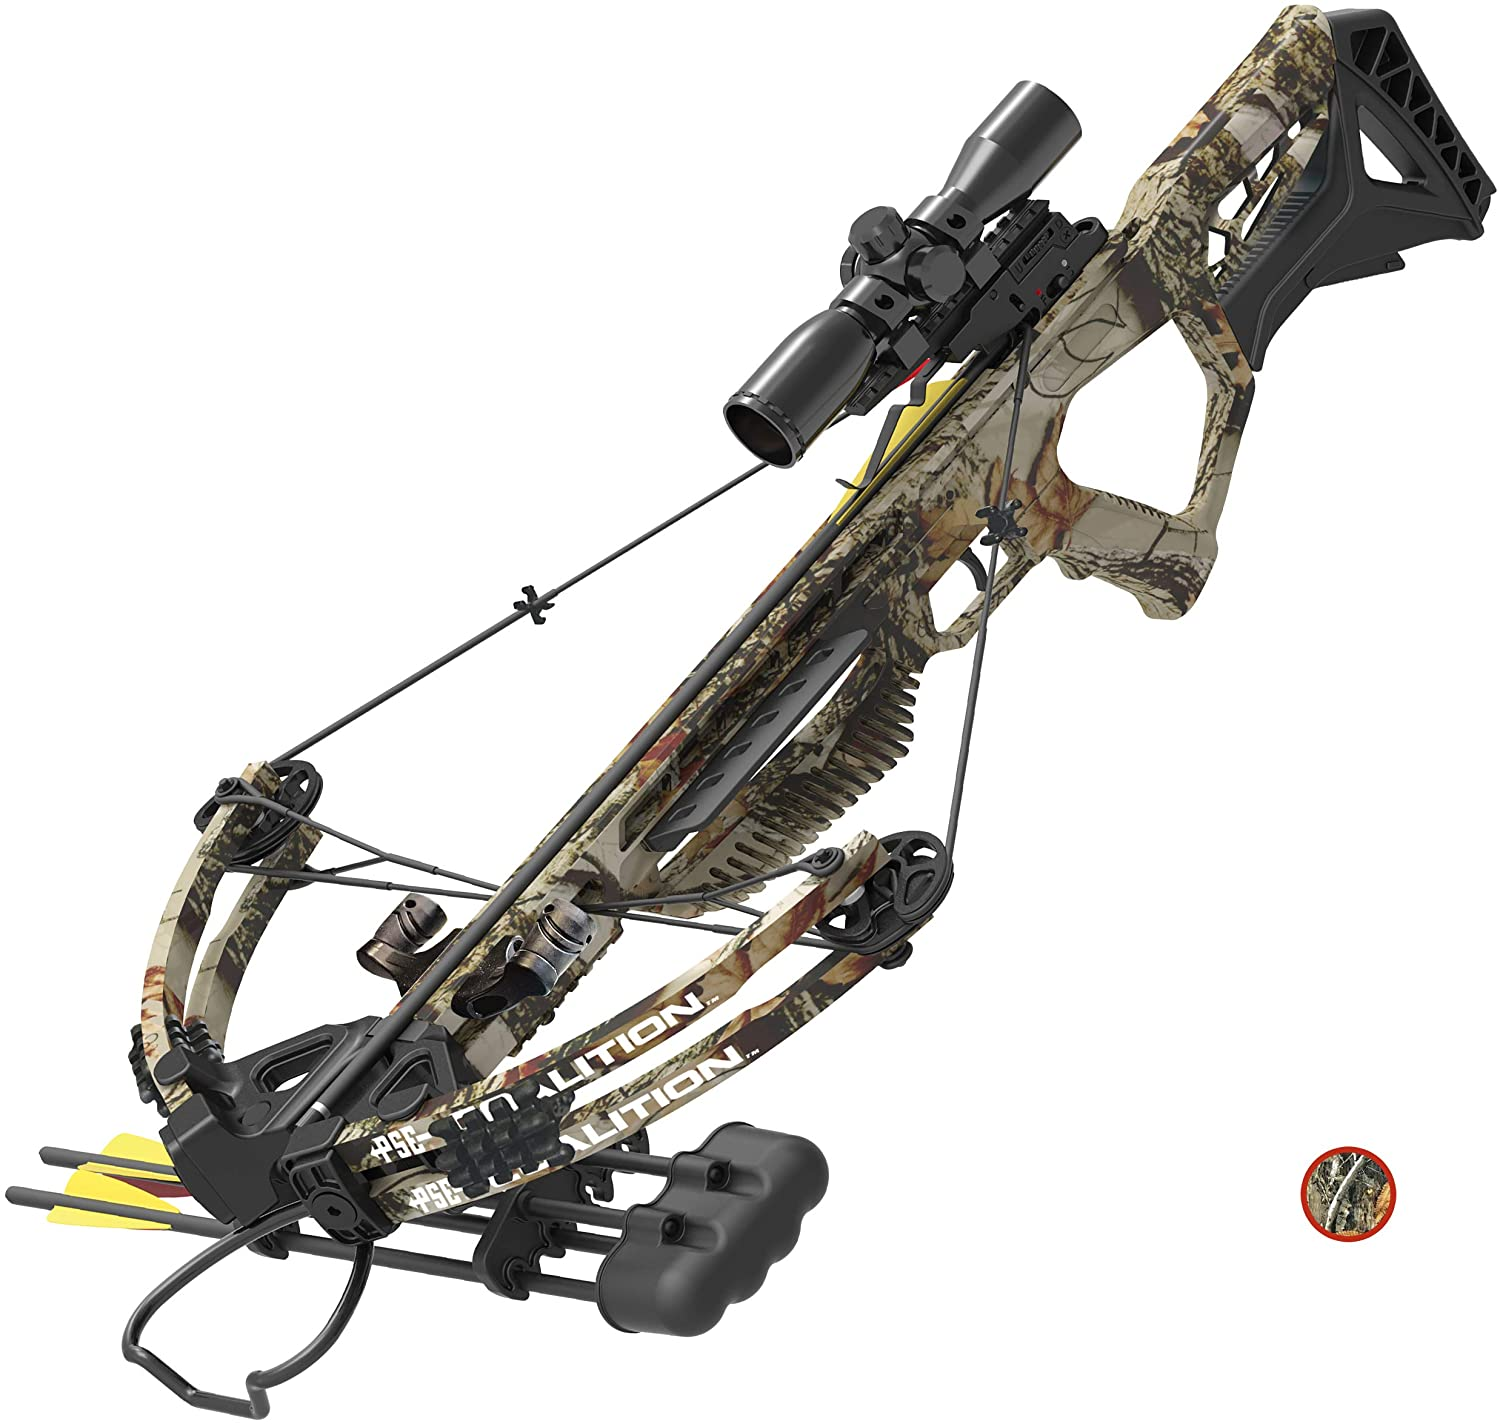 PSE Archery Coalition Crossbow Review